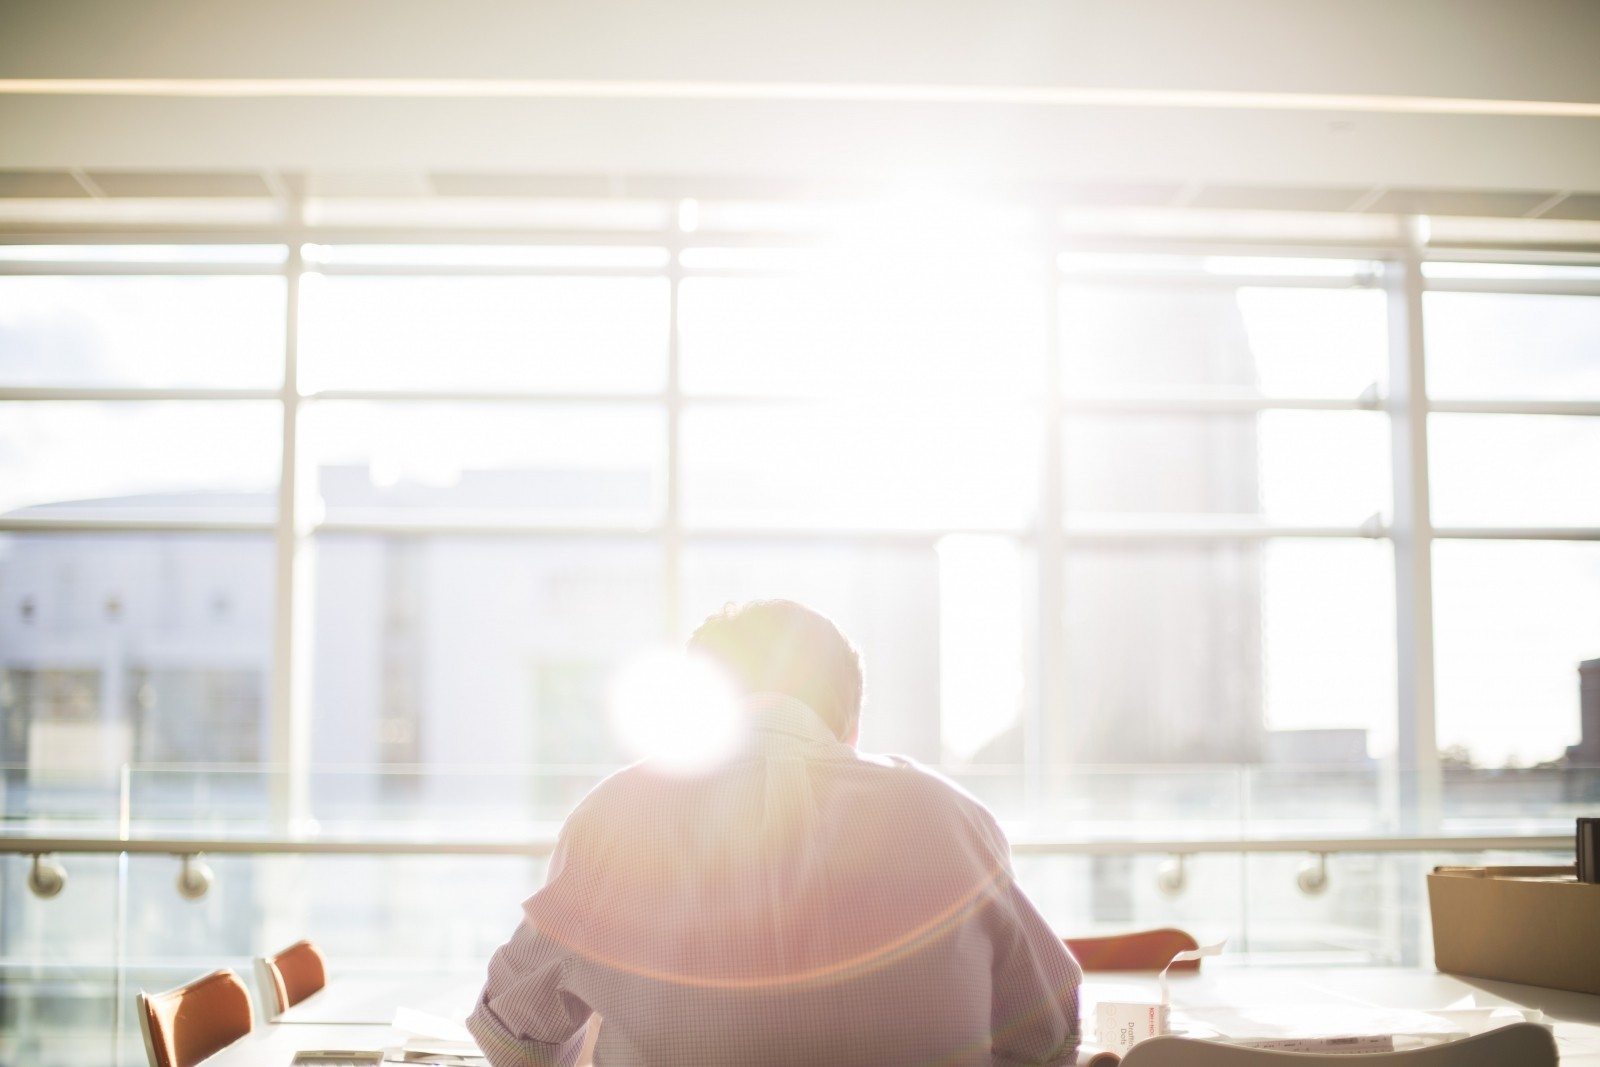 Person sitting at desk bathed in sunlight